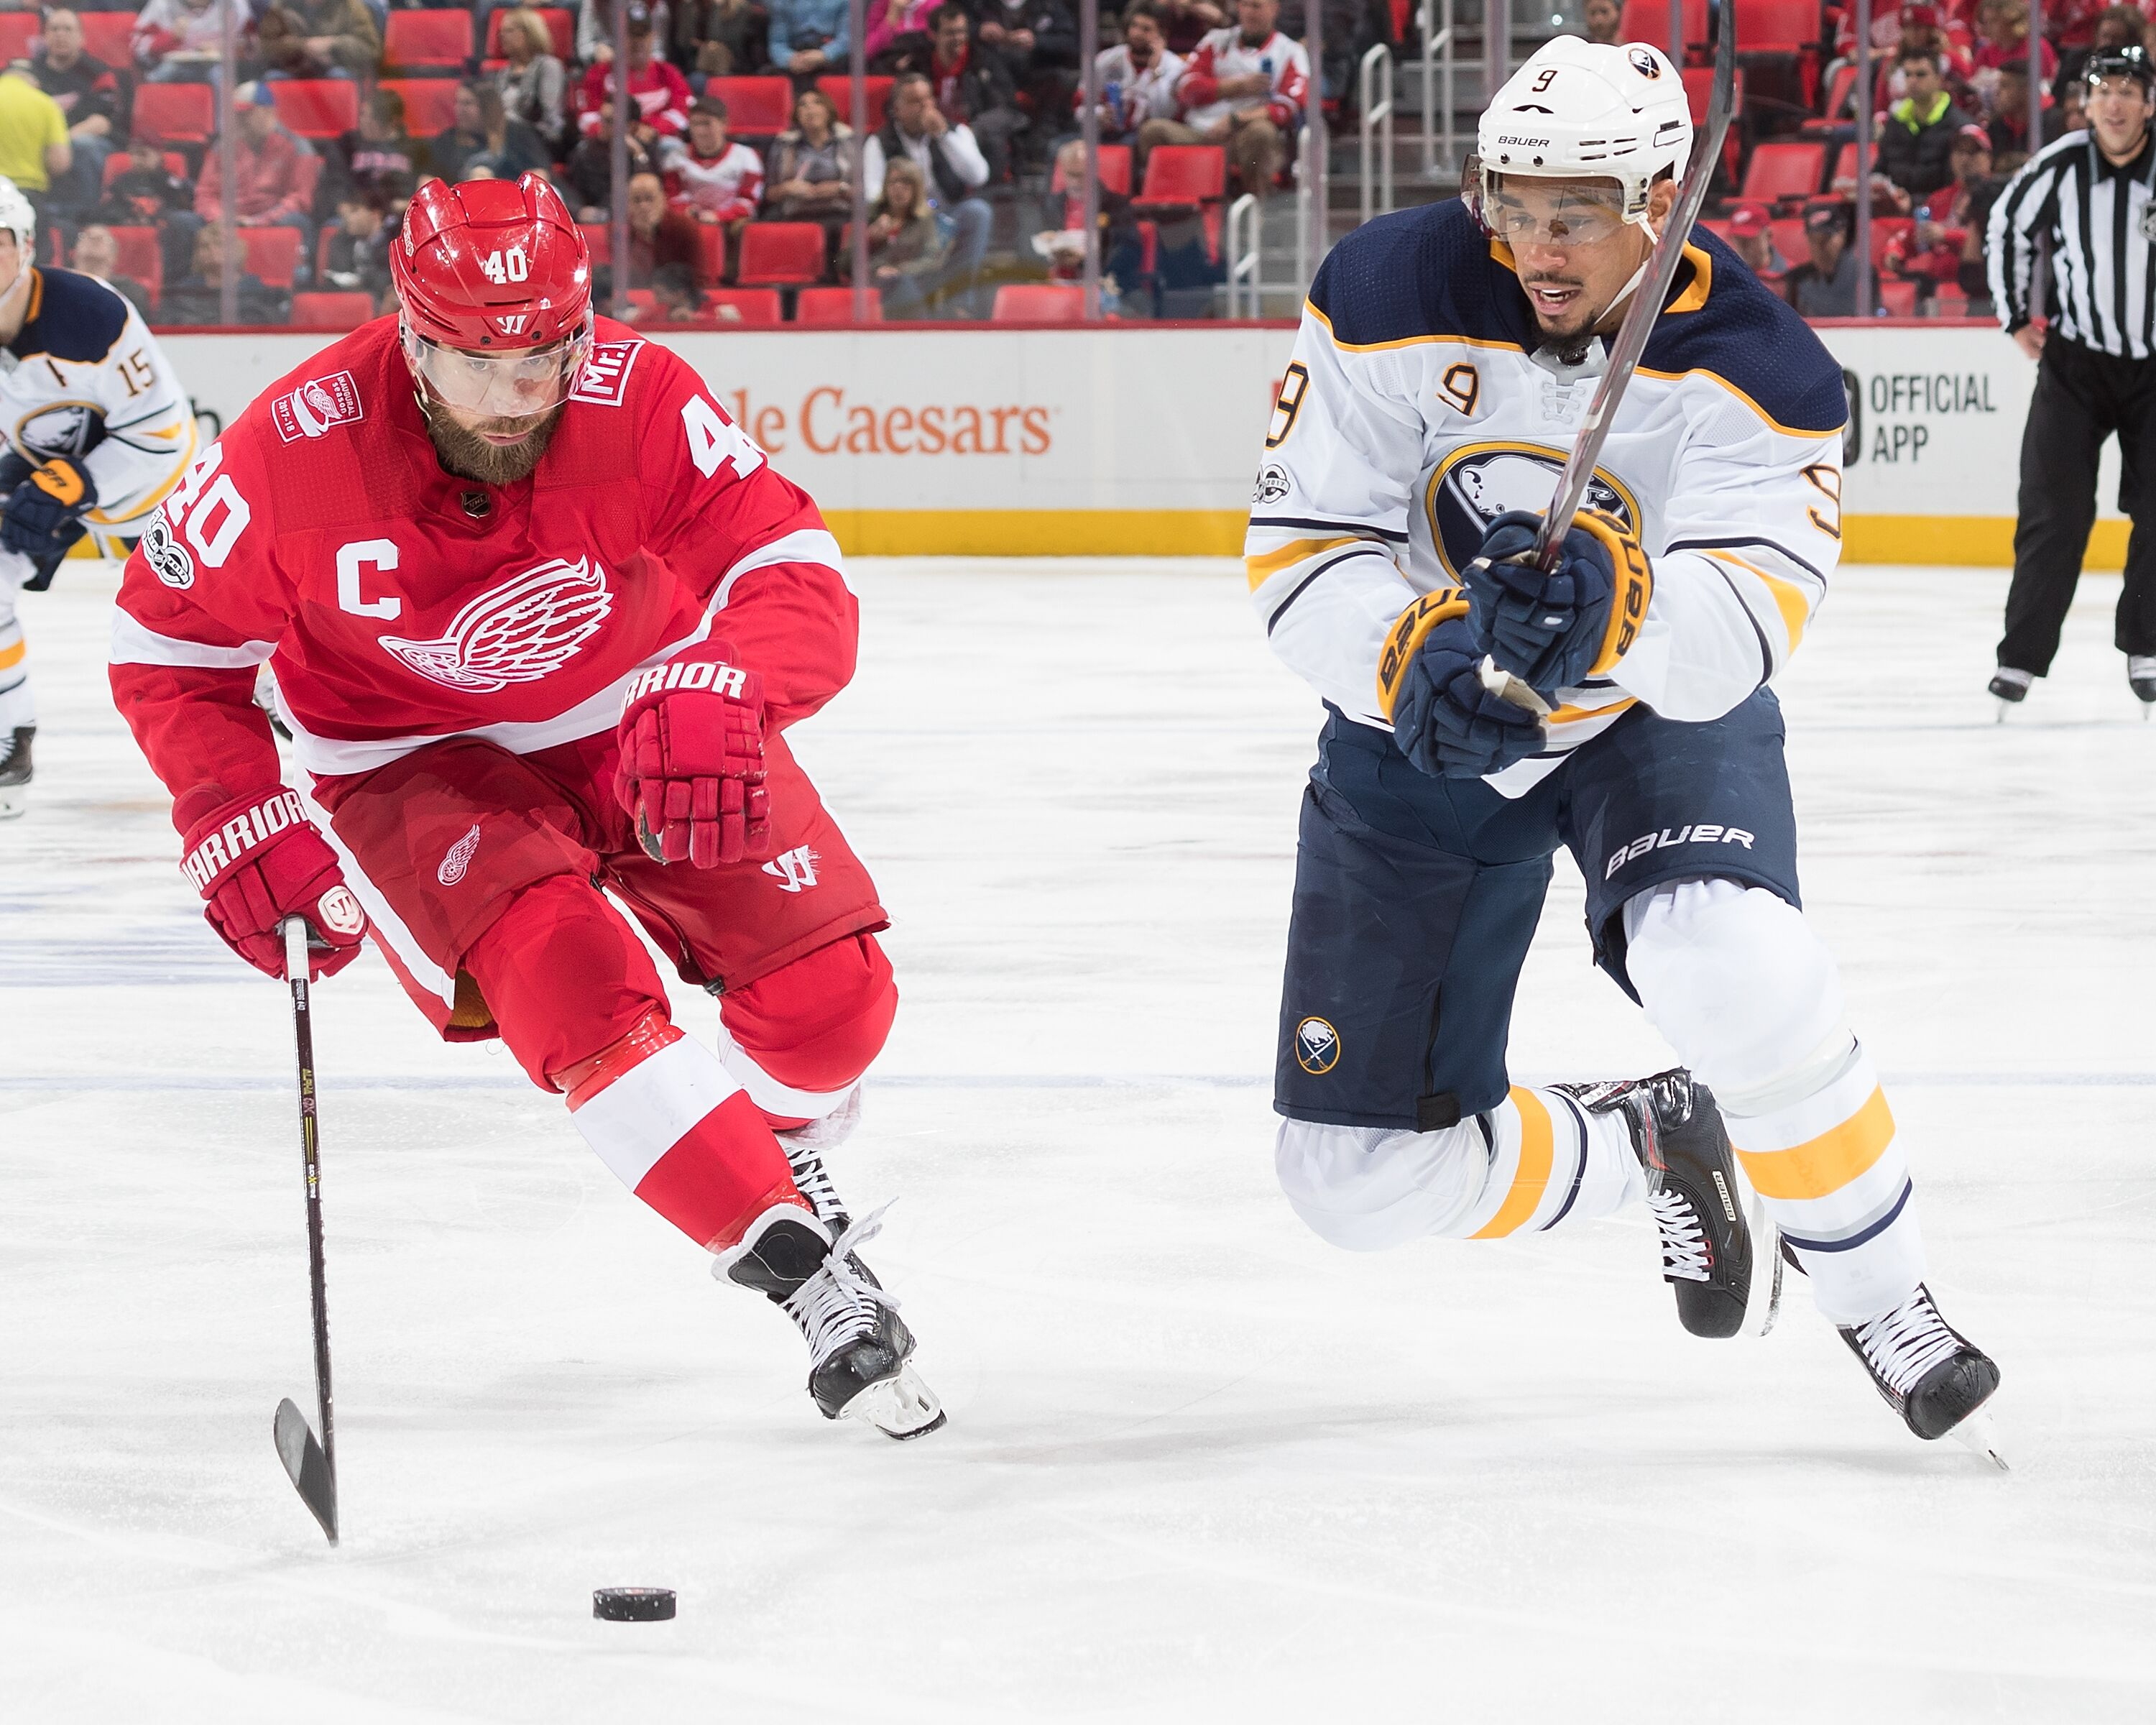 875514352-buffalo-sabres-v-detroit-red-wings.jpg